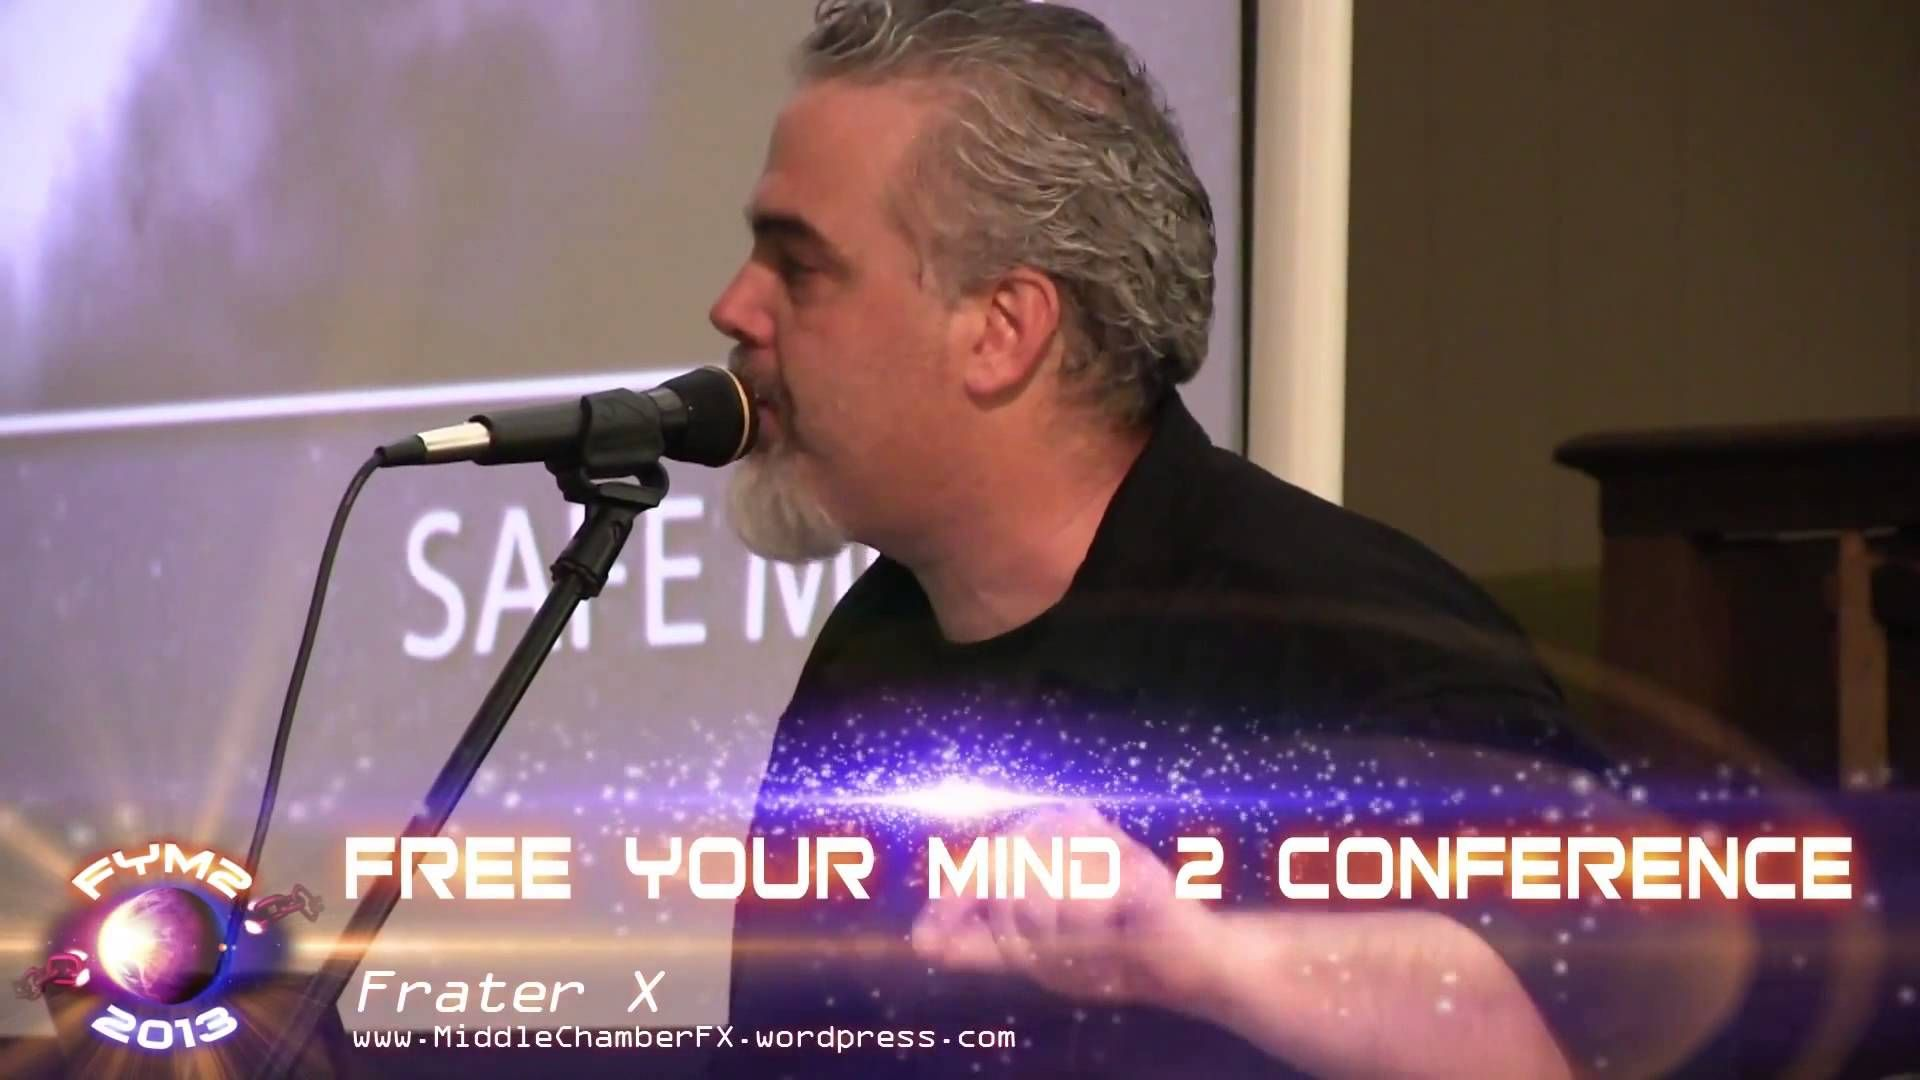 Frater X - Free Your Mind 2 Conference 2013